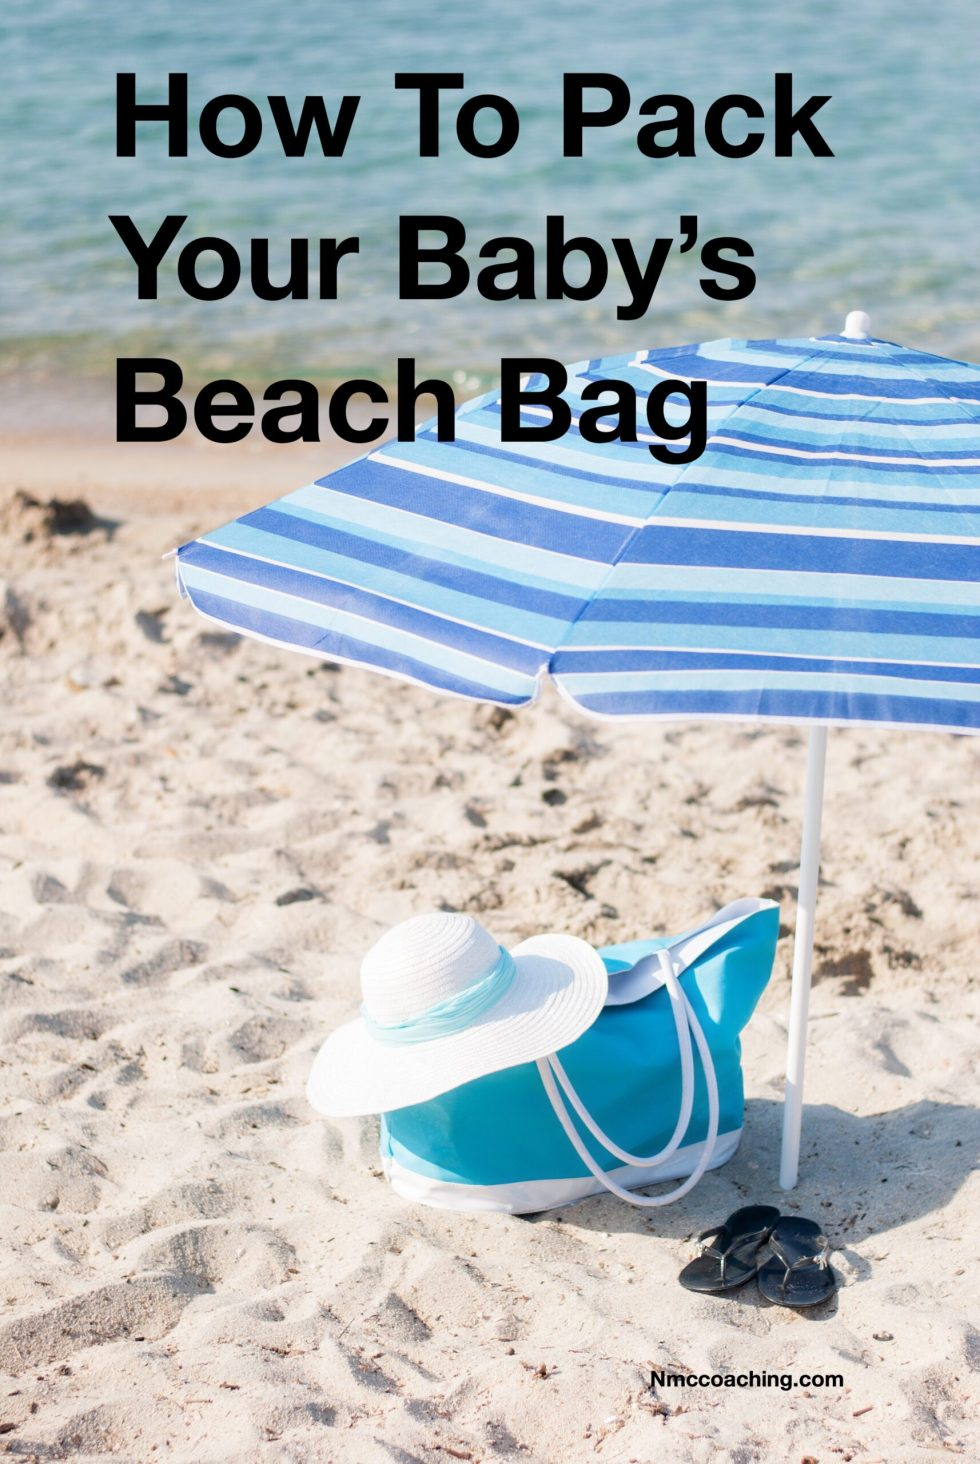 How to pack your baby's beach bag